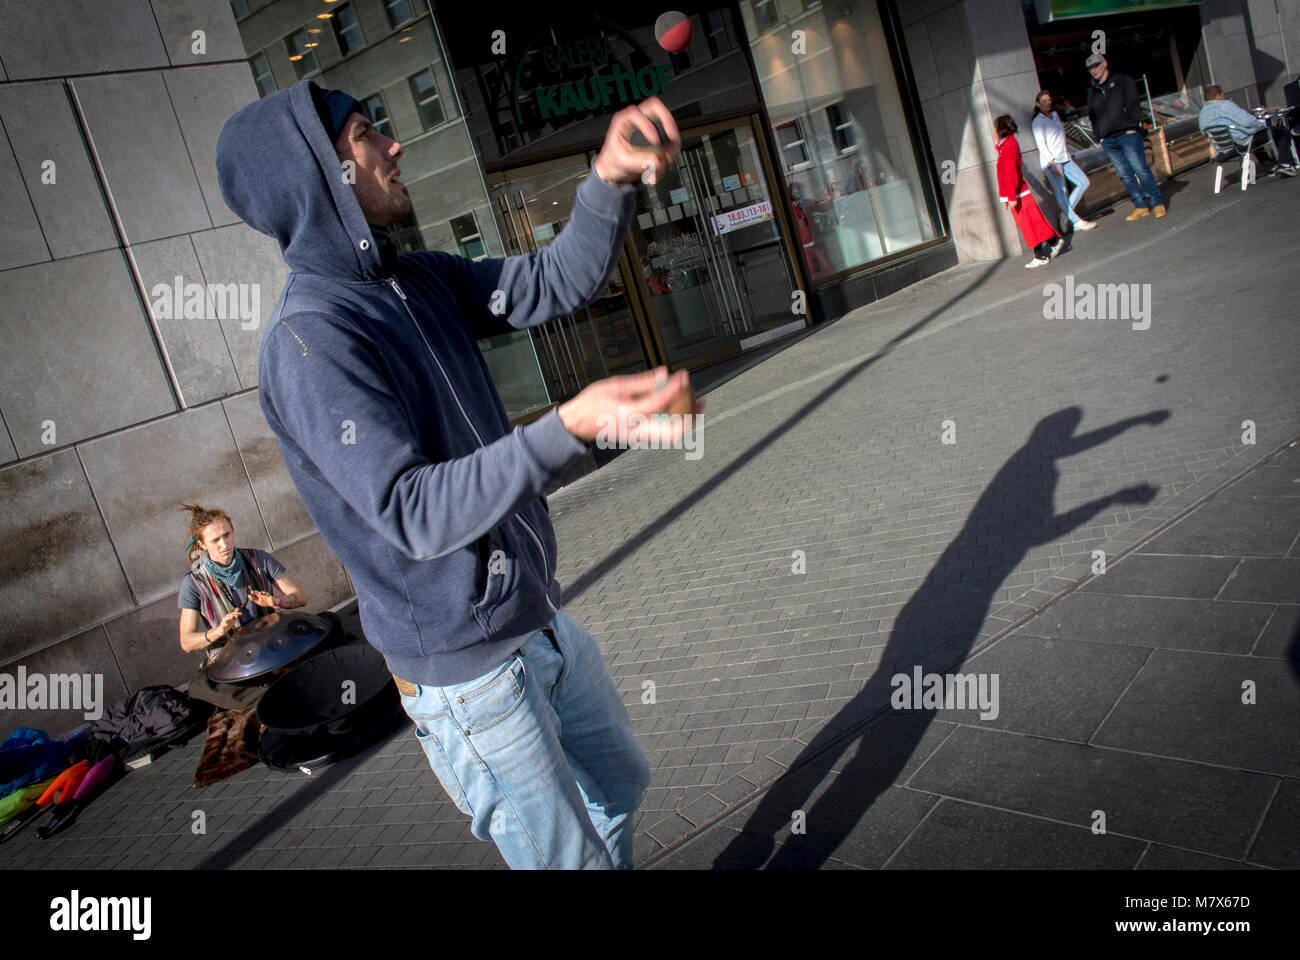 A street performer juggling in Halle, Saxony-Anhalt, Germany - Stock Image